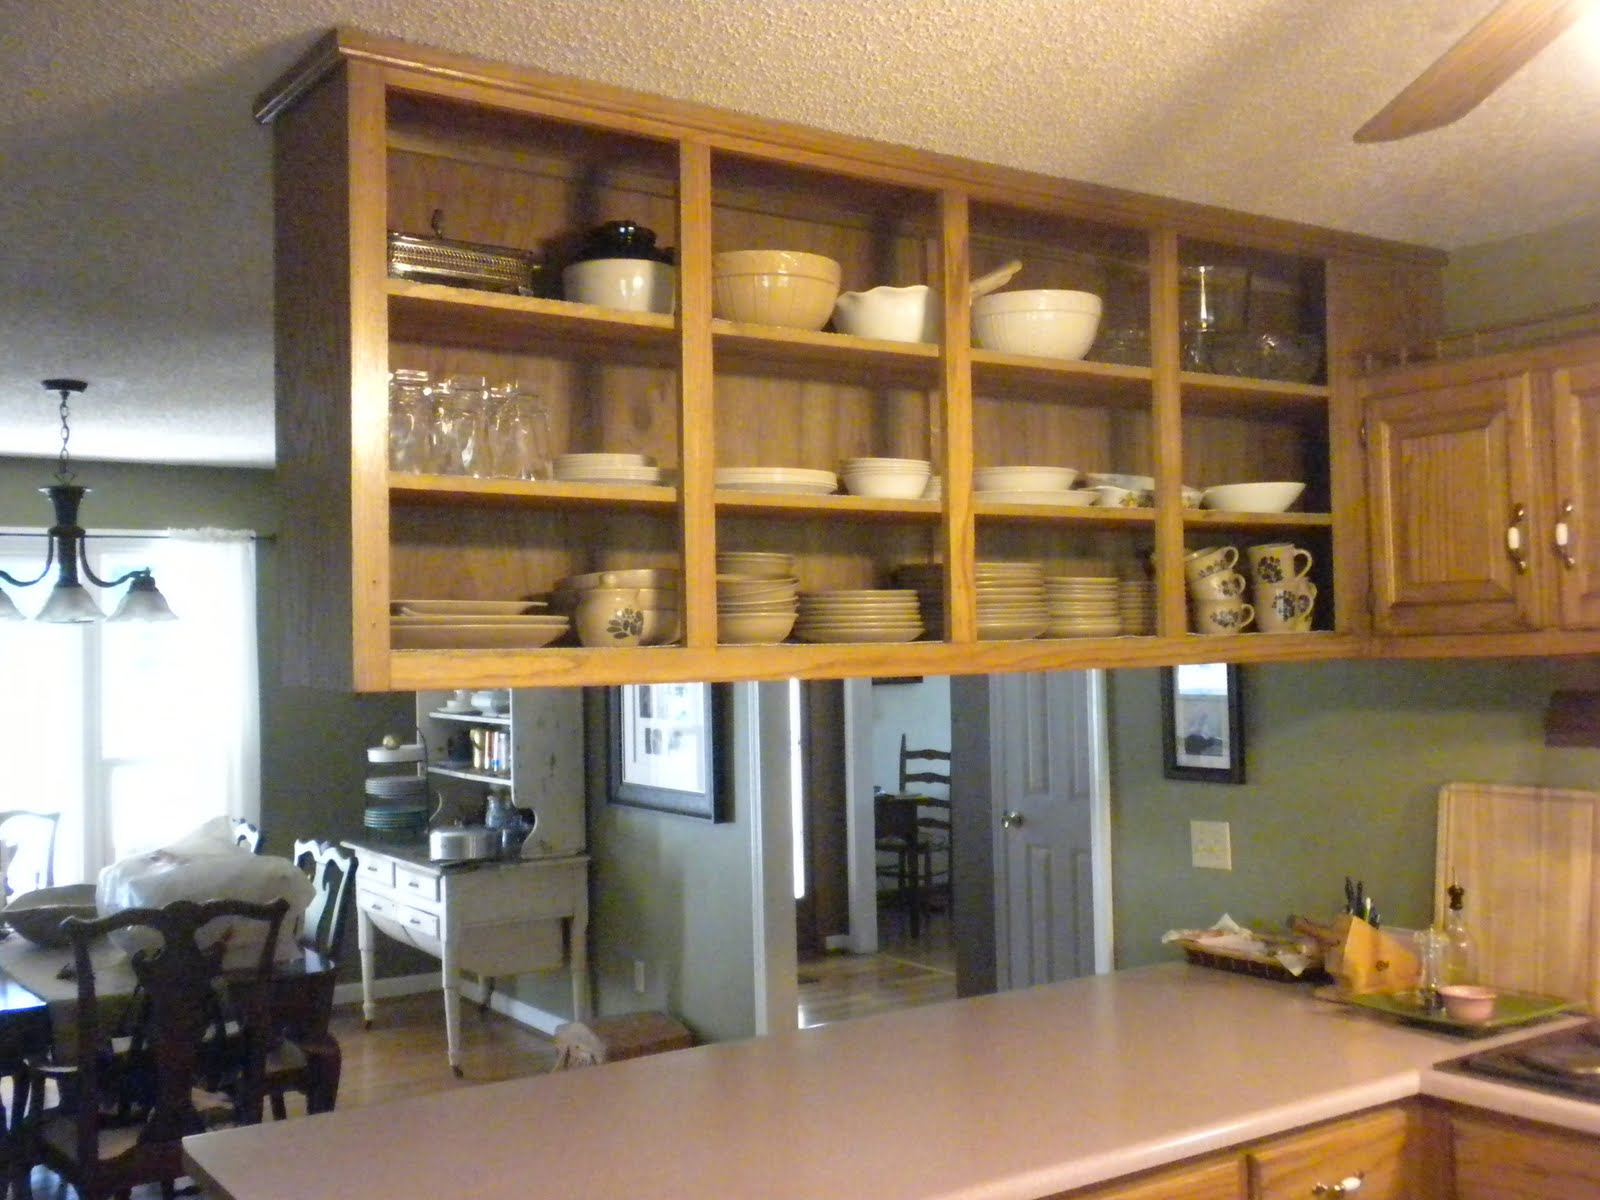 a meek perspective - Upper Kitchen Cabinets